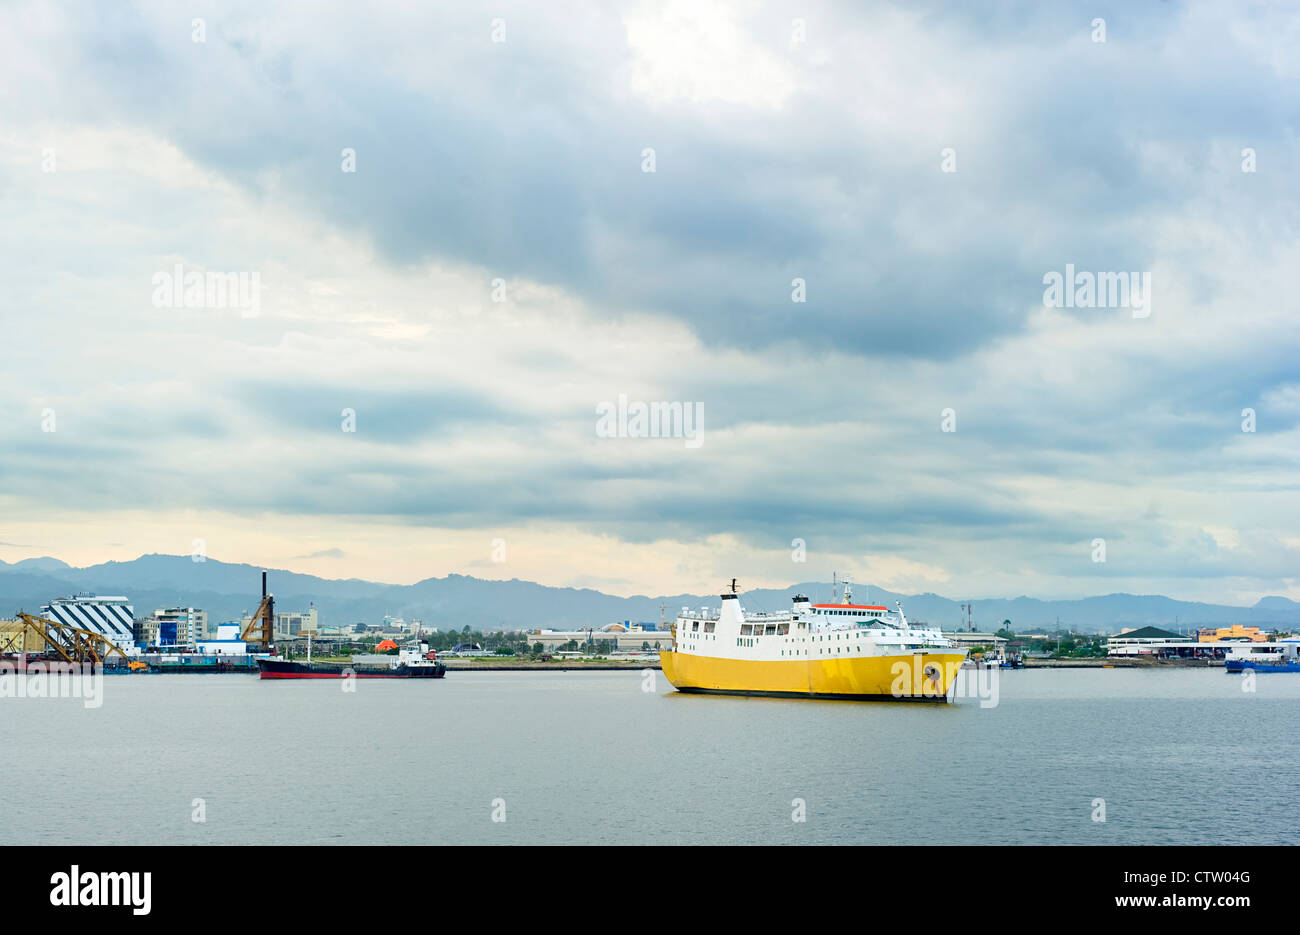 Yellow ship in industrial harbor. Cebu, Philippines - Stock Image